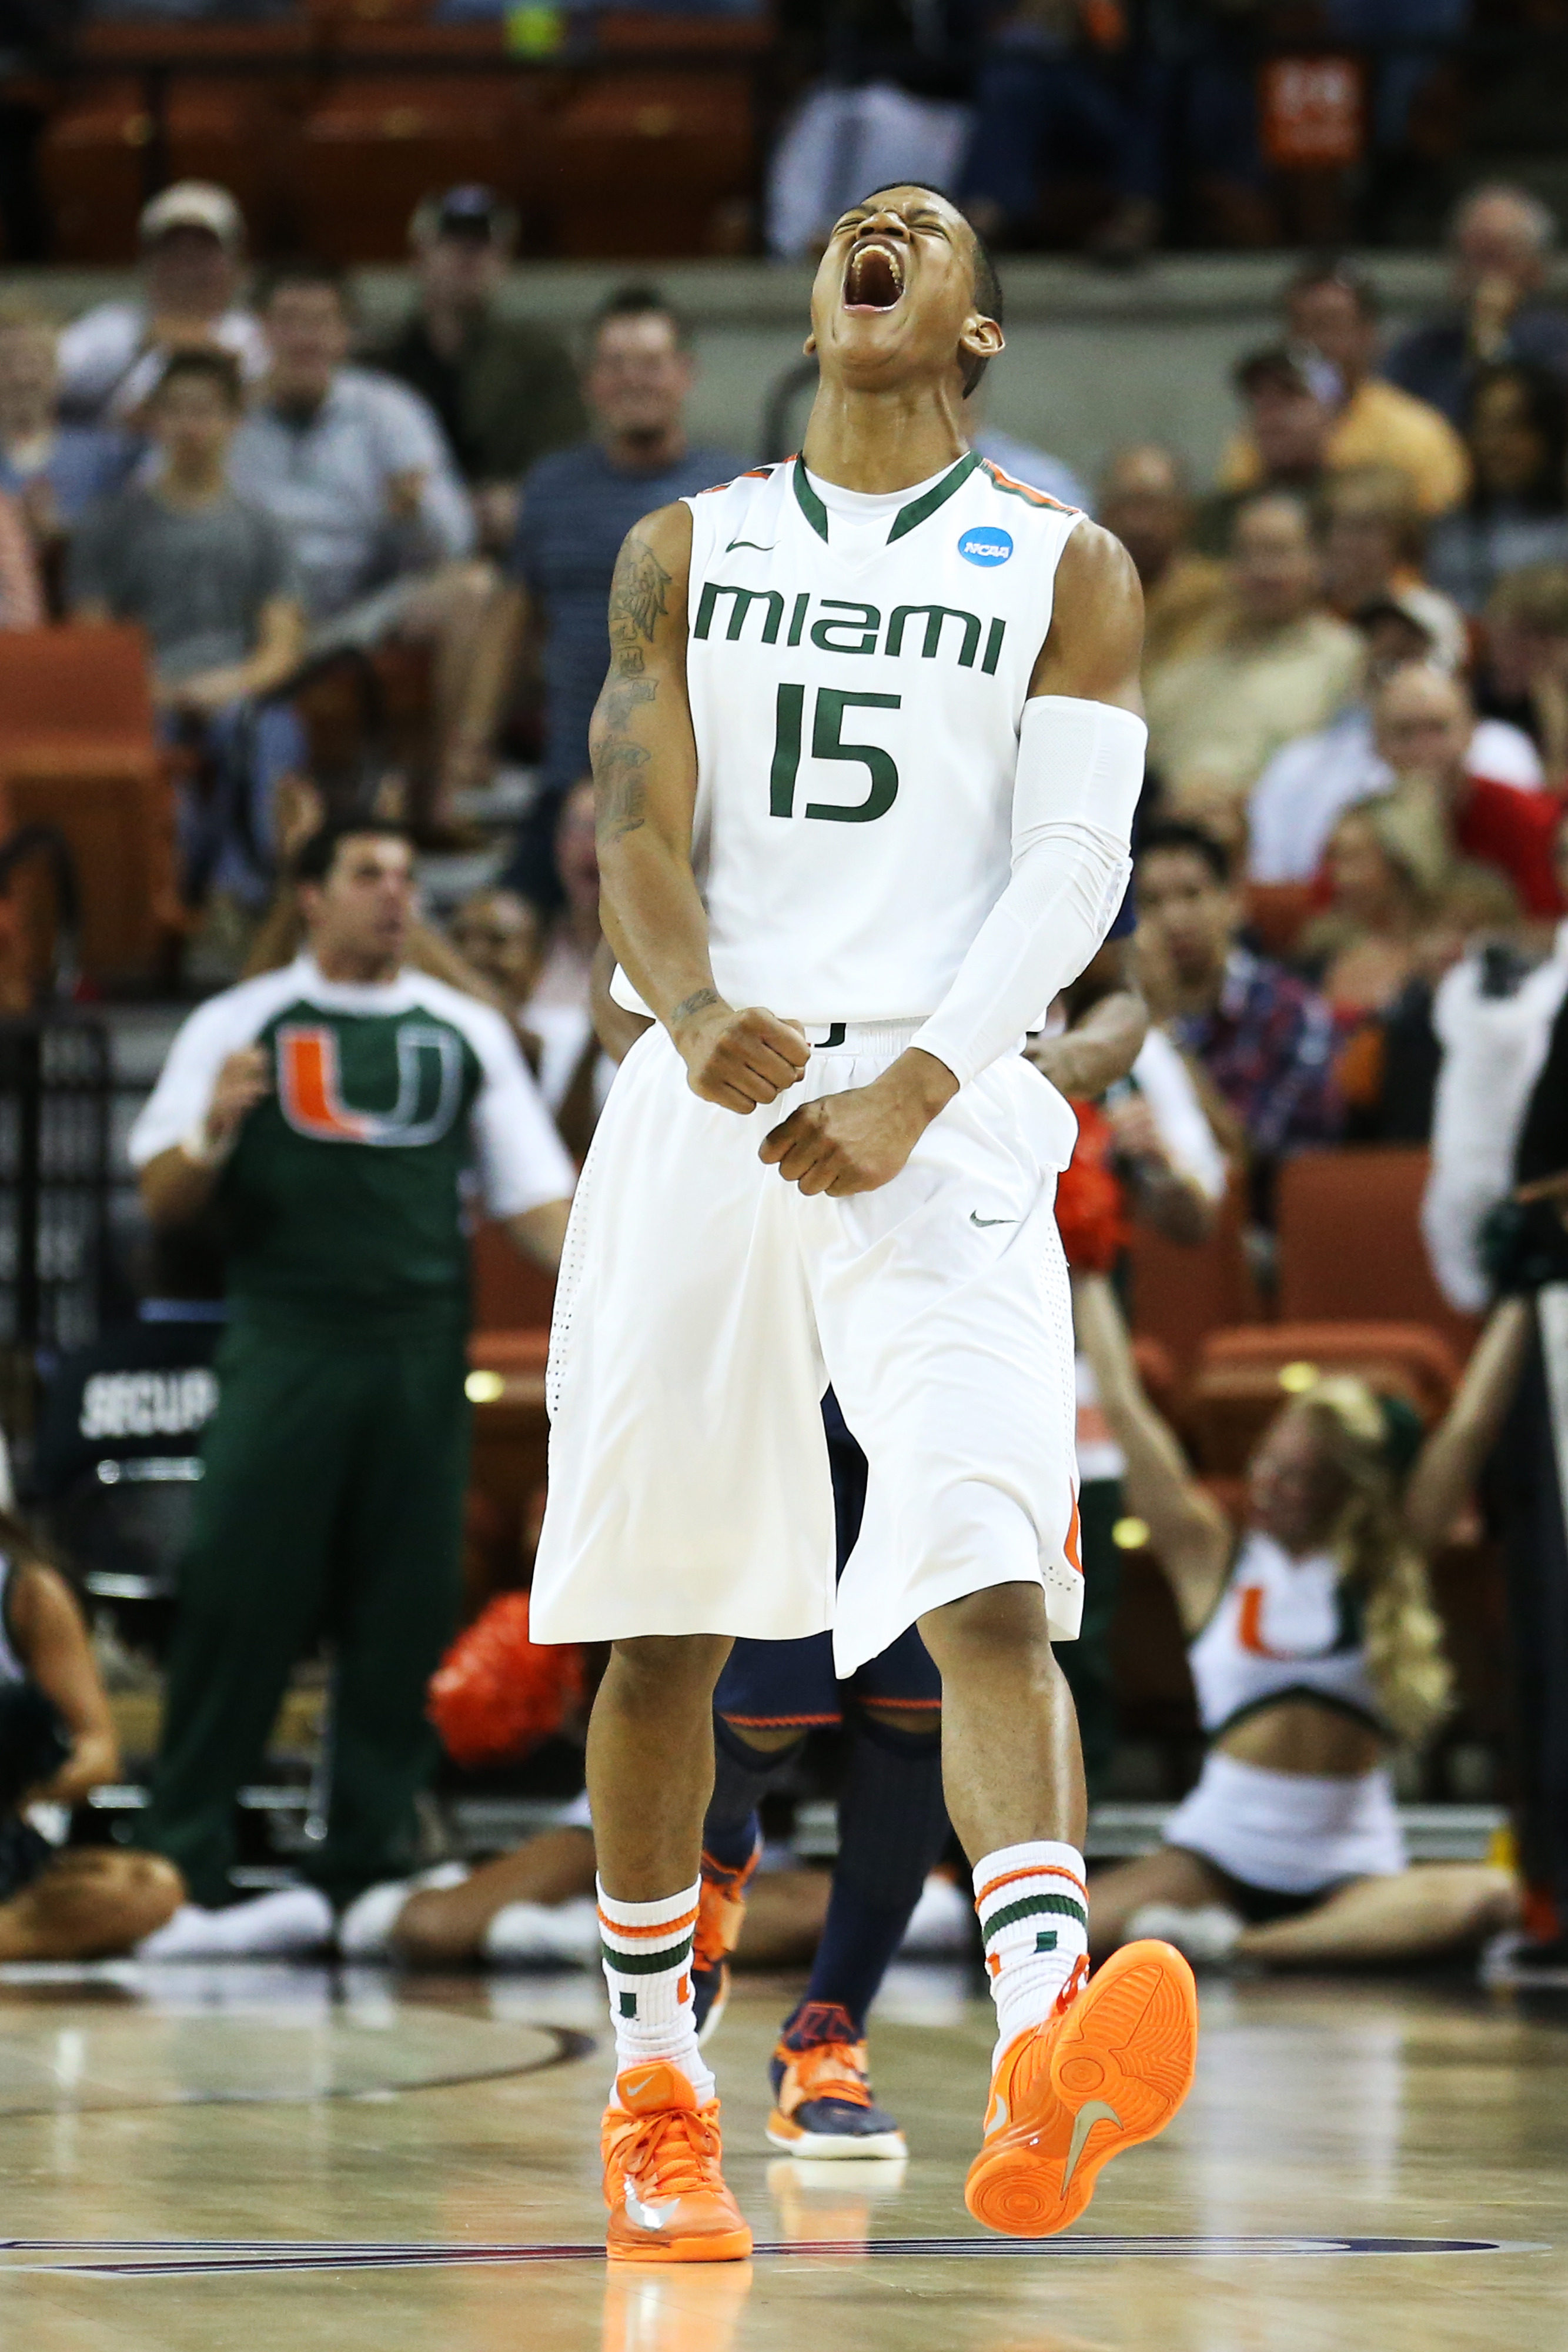 NCAA bracket update 2013: Scores and highlights from Sunday's action